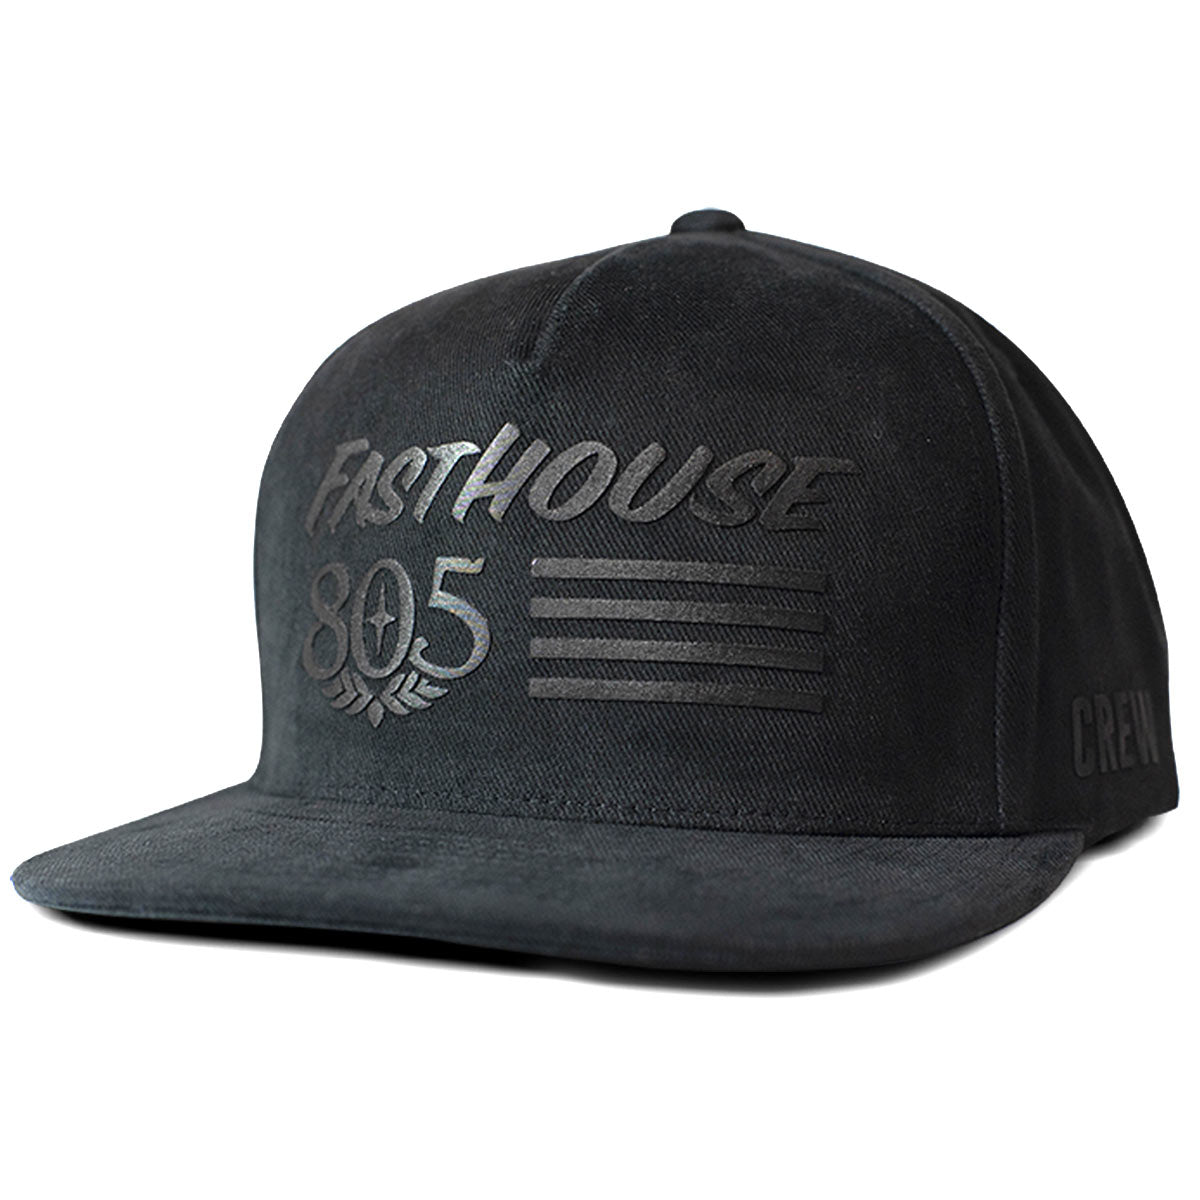 805 Crew Only Hat - Black